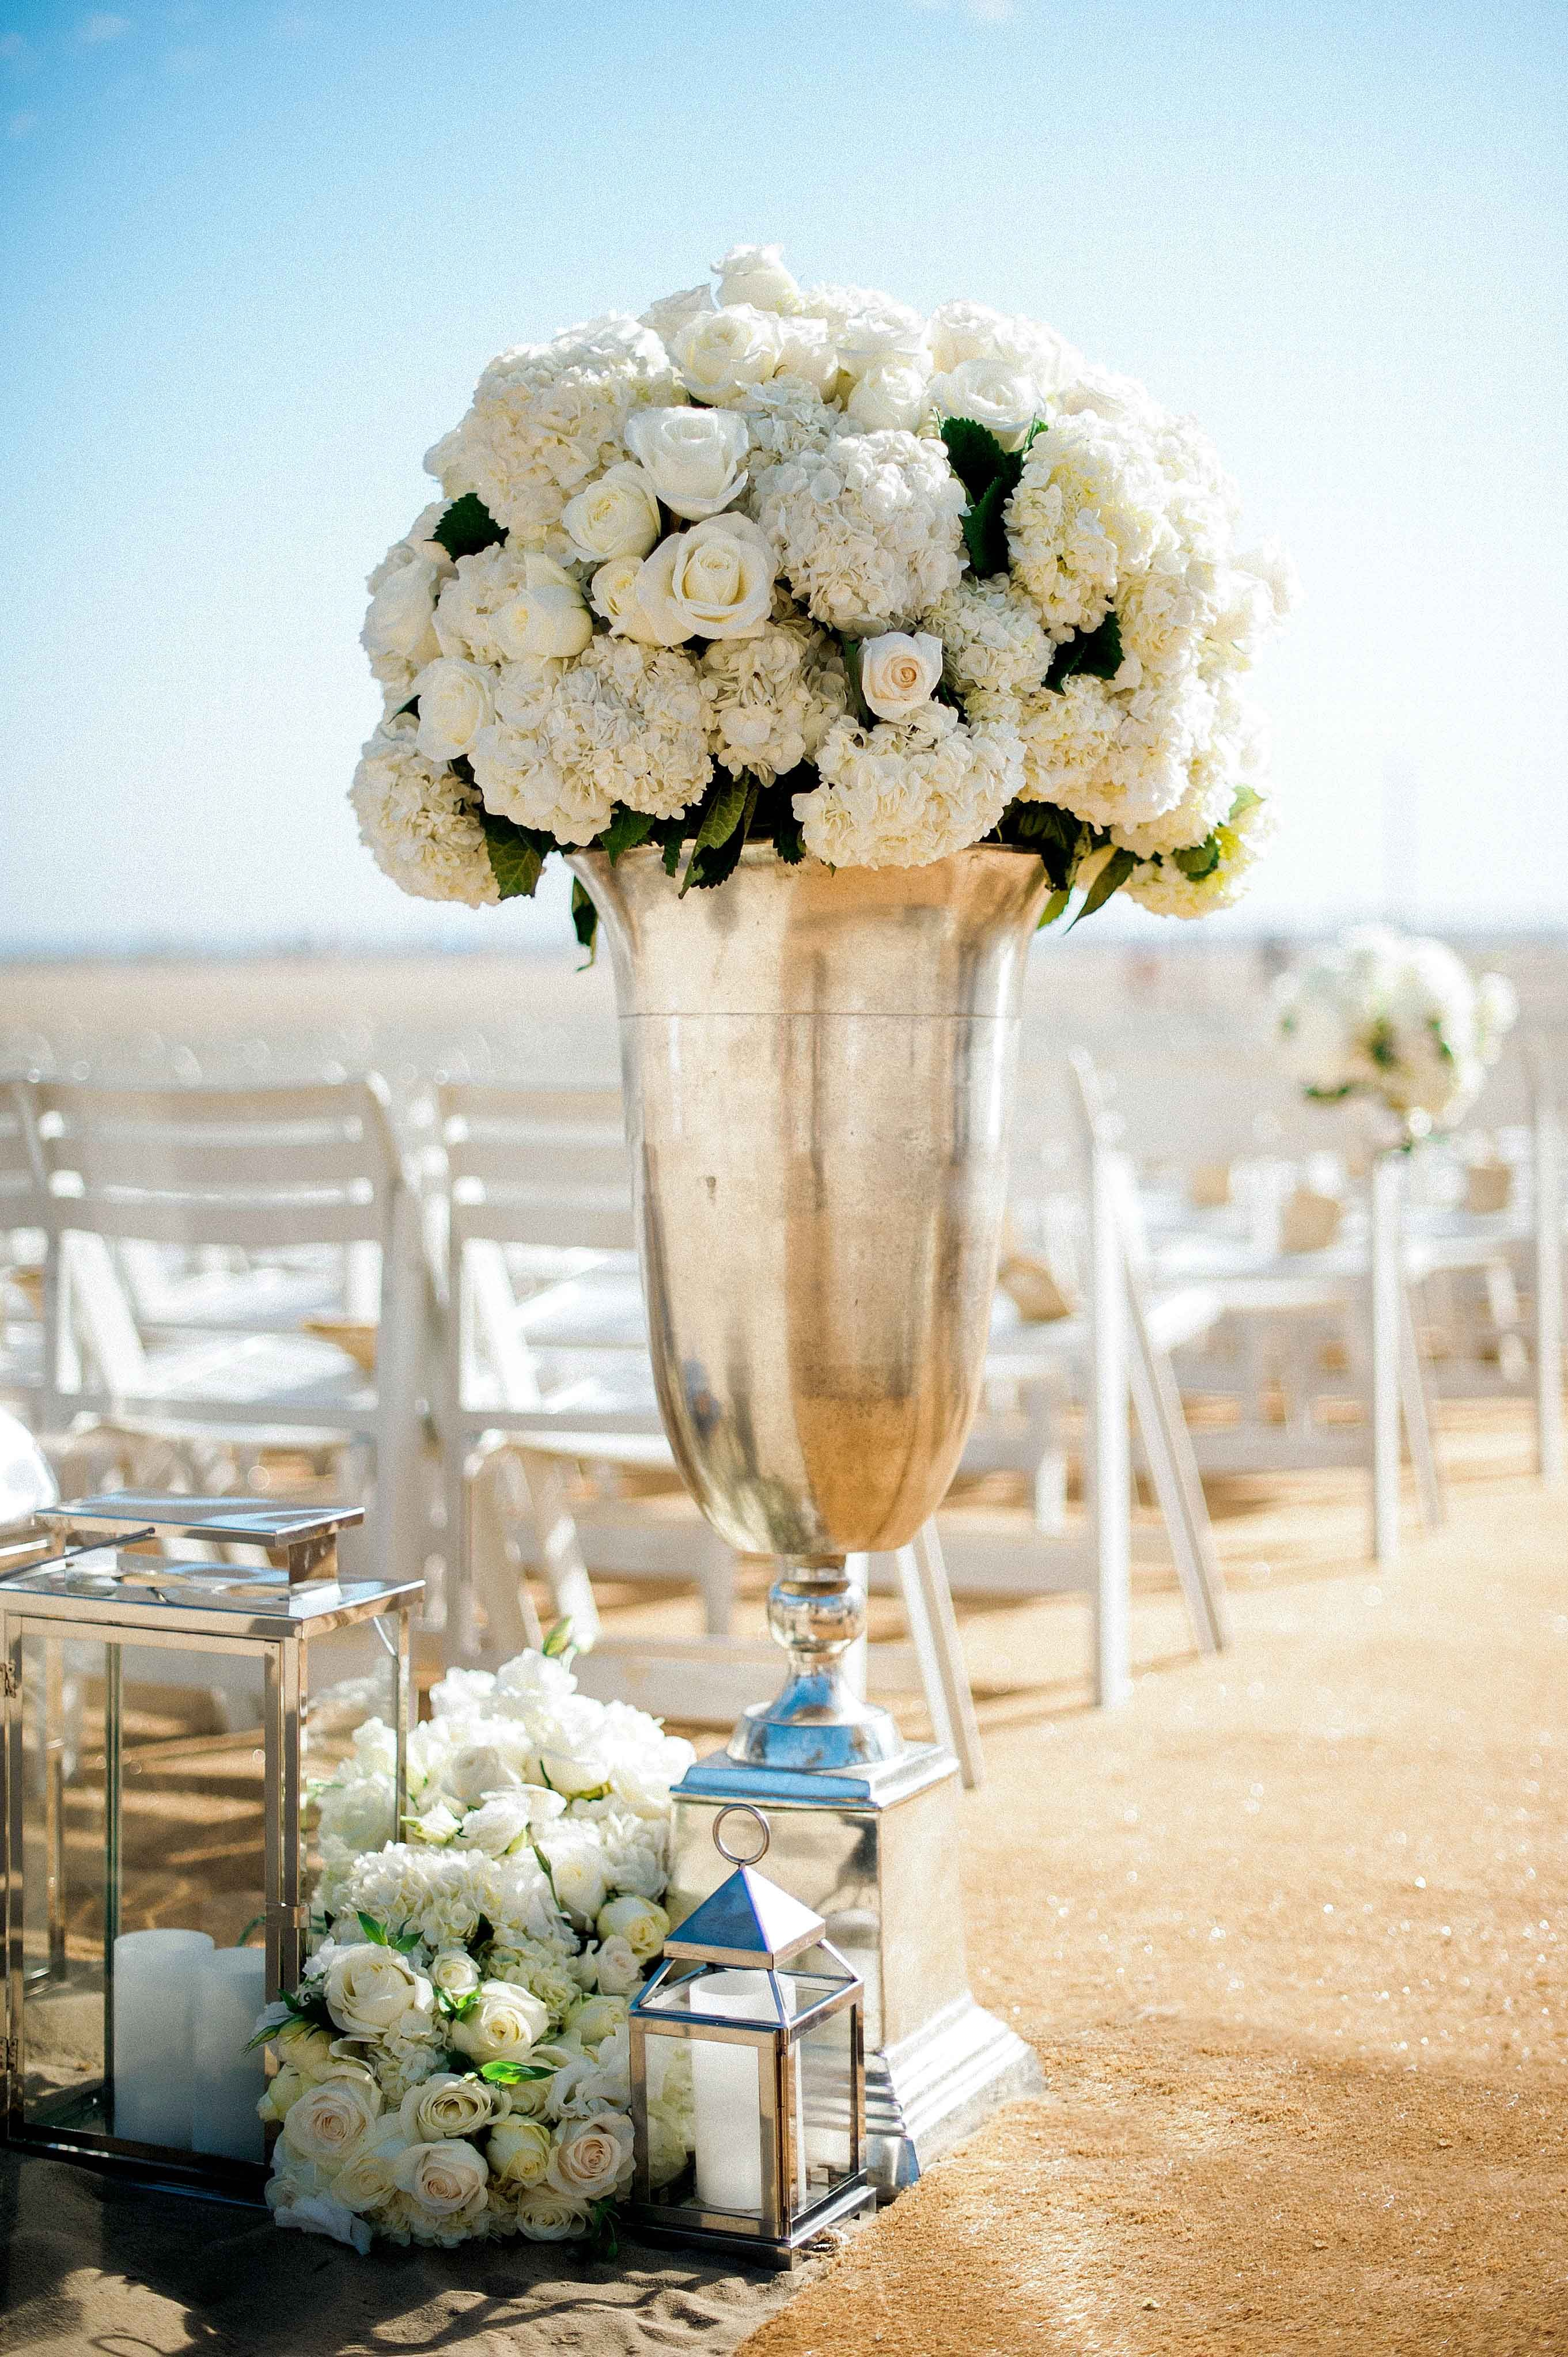 fe1e10424b Silver Urn with Ivory Blooms & Lanterns Photography: Yvette Roman  Photography Read More: